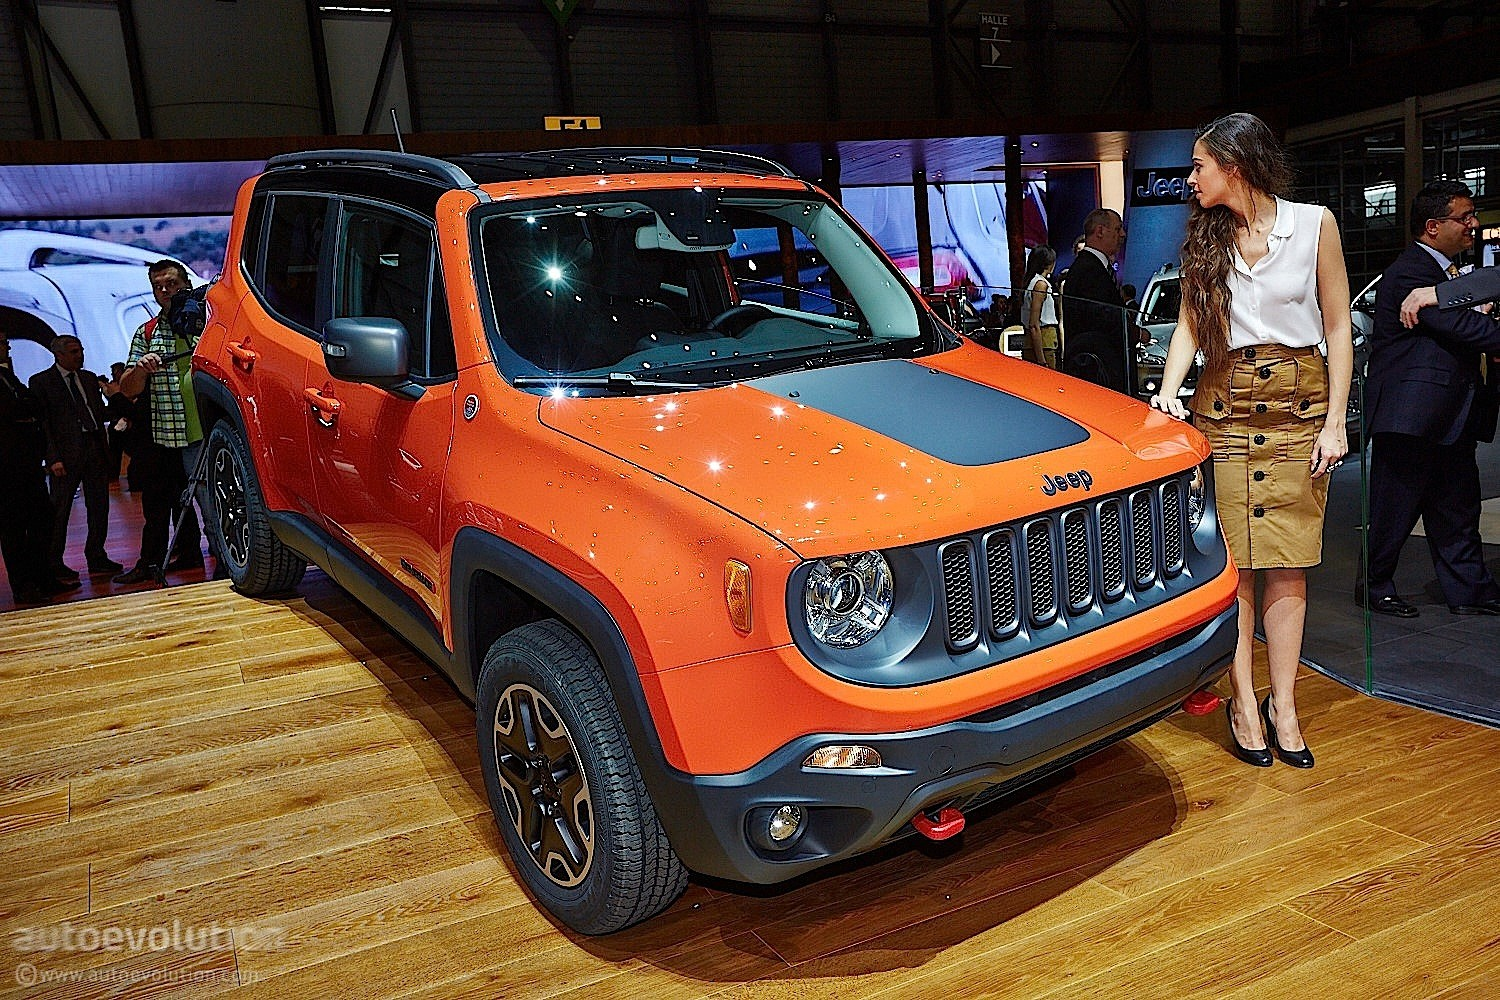 2015-jeep-renegade-17995-is-more-expensive-than-the-2015-jeep-patriot